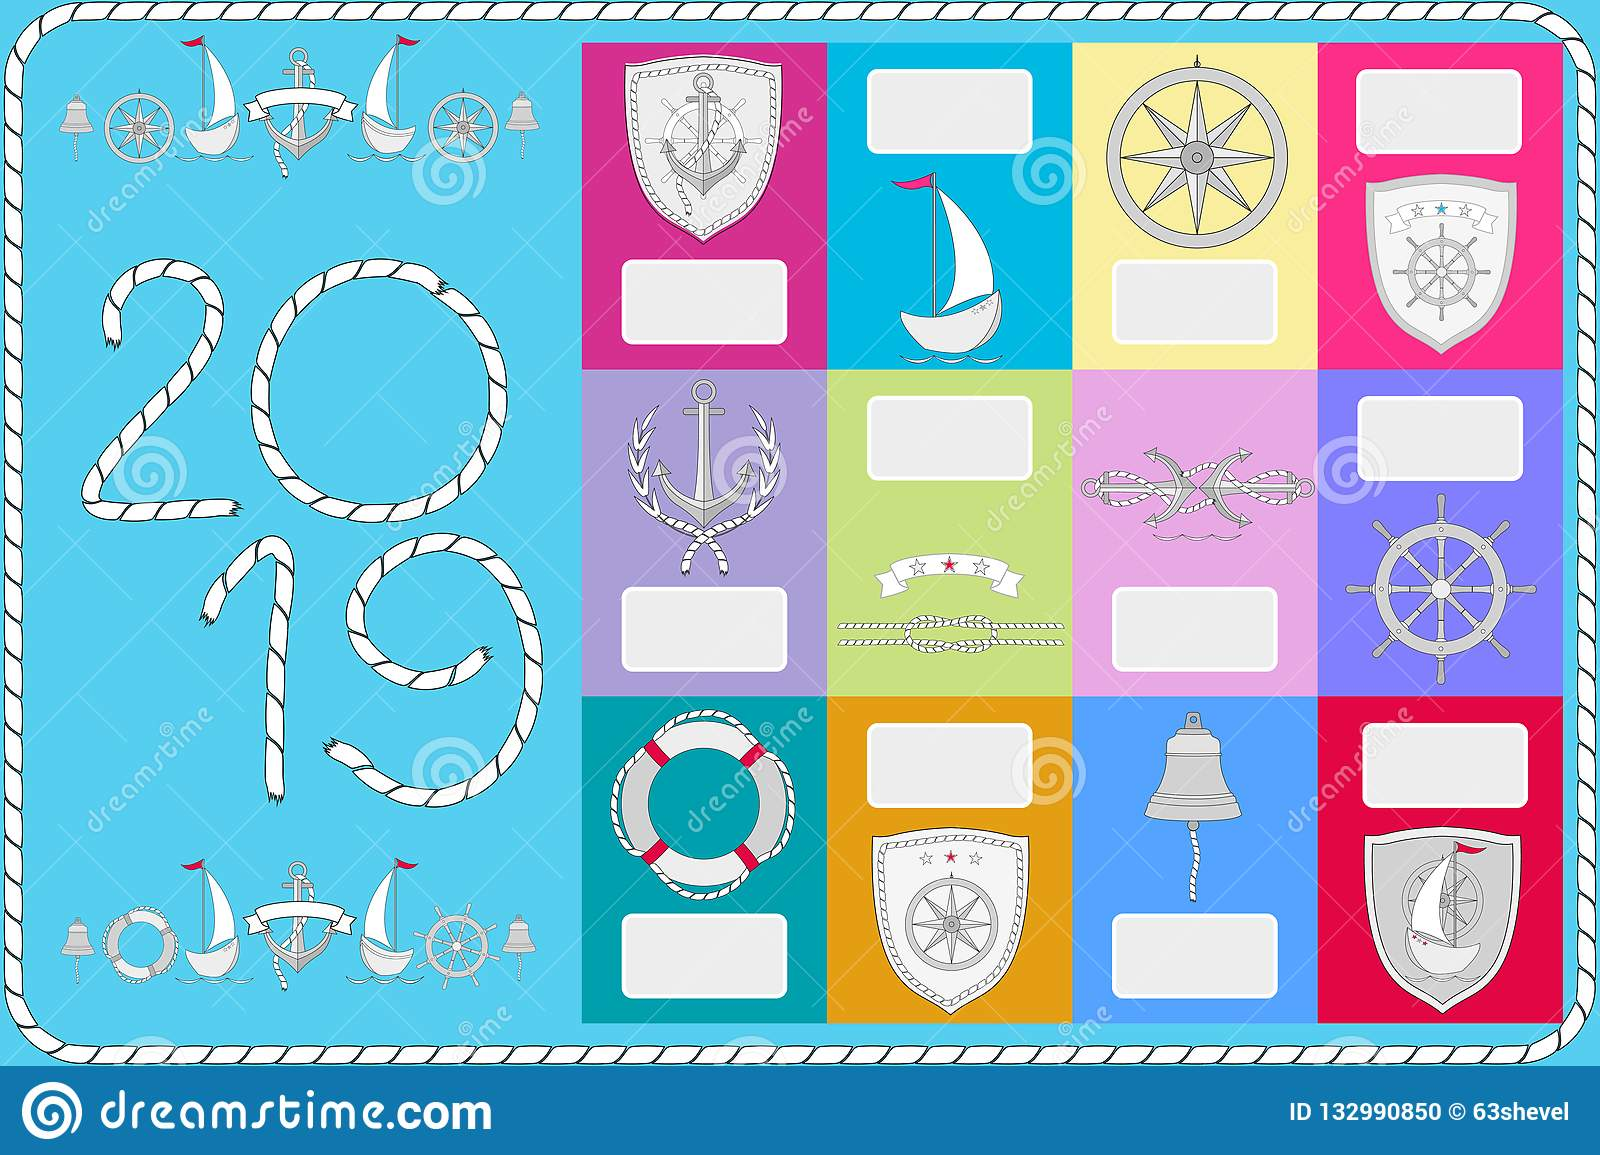 An example of a calendar with sailor symbols. New Year banner 2019.